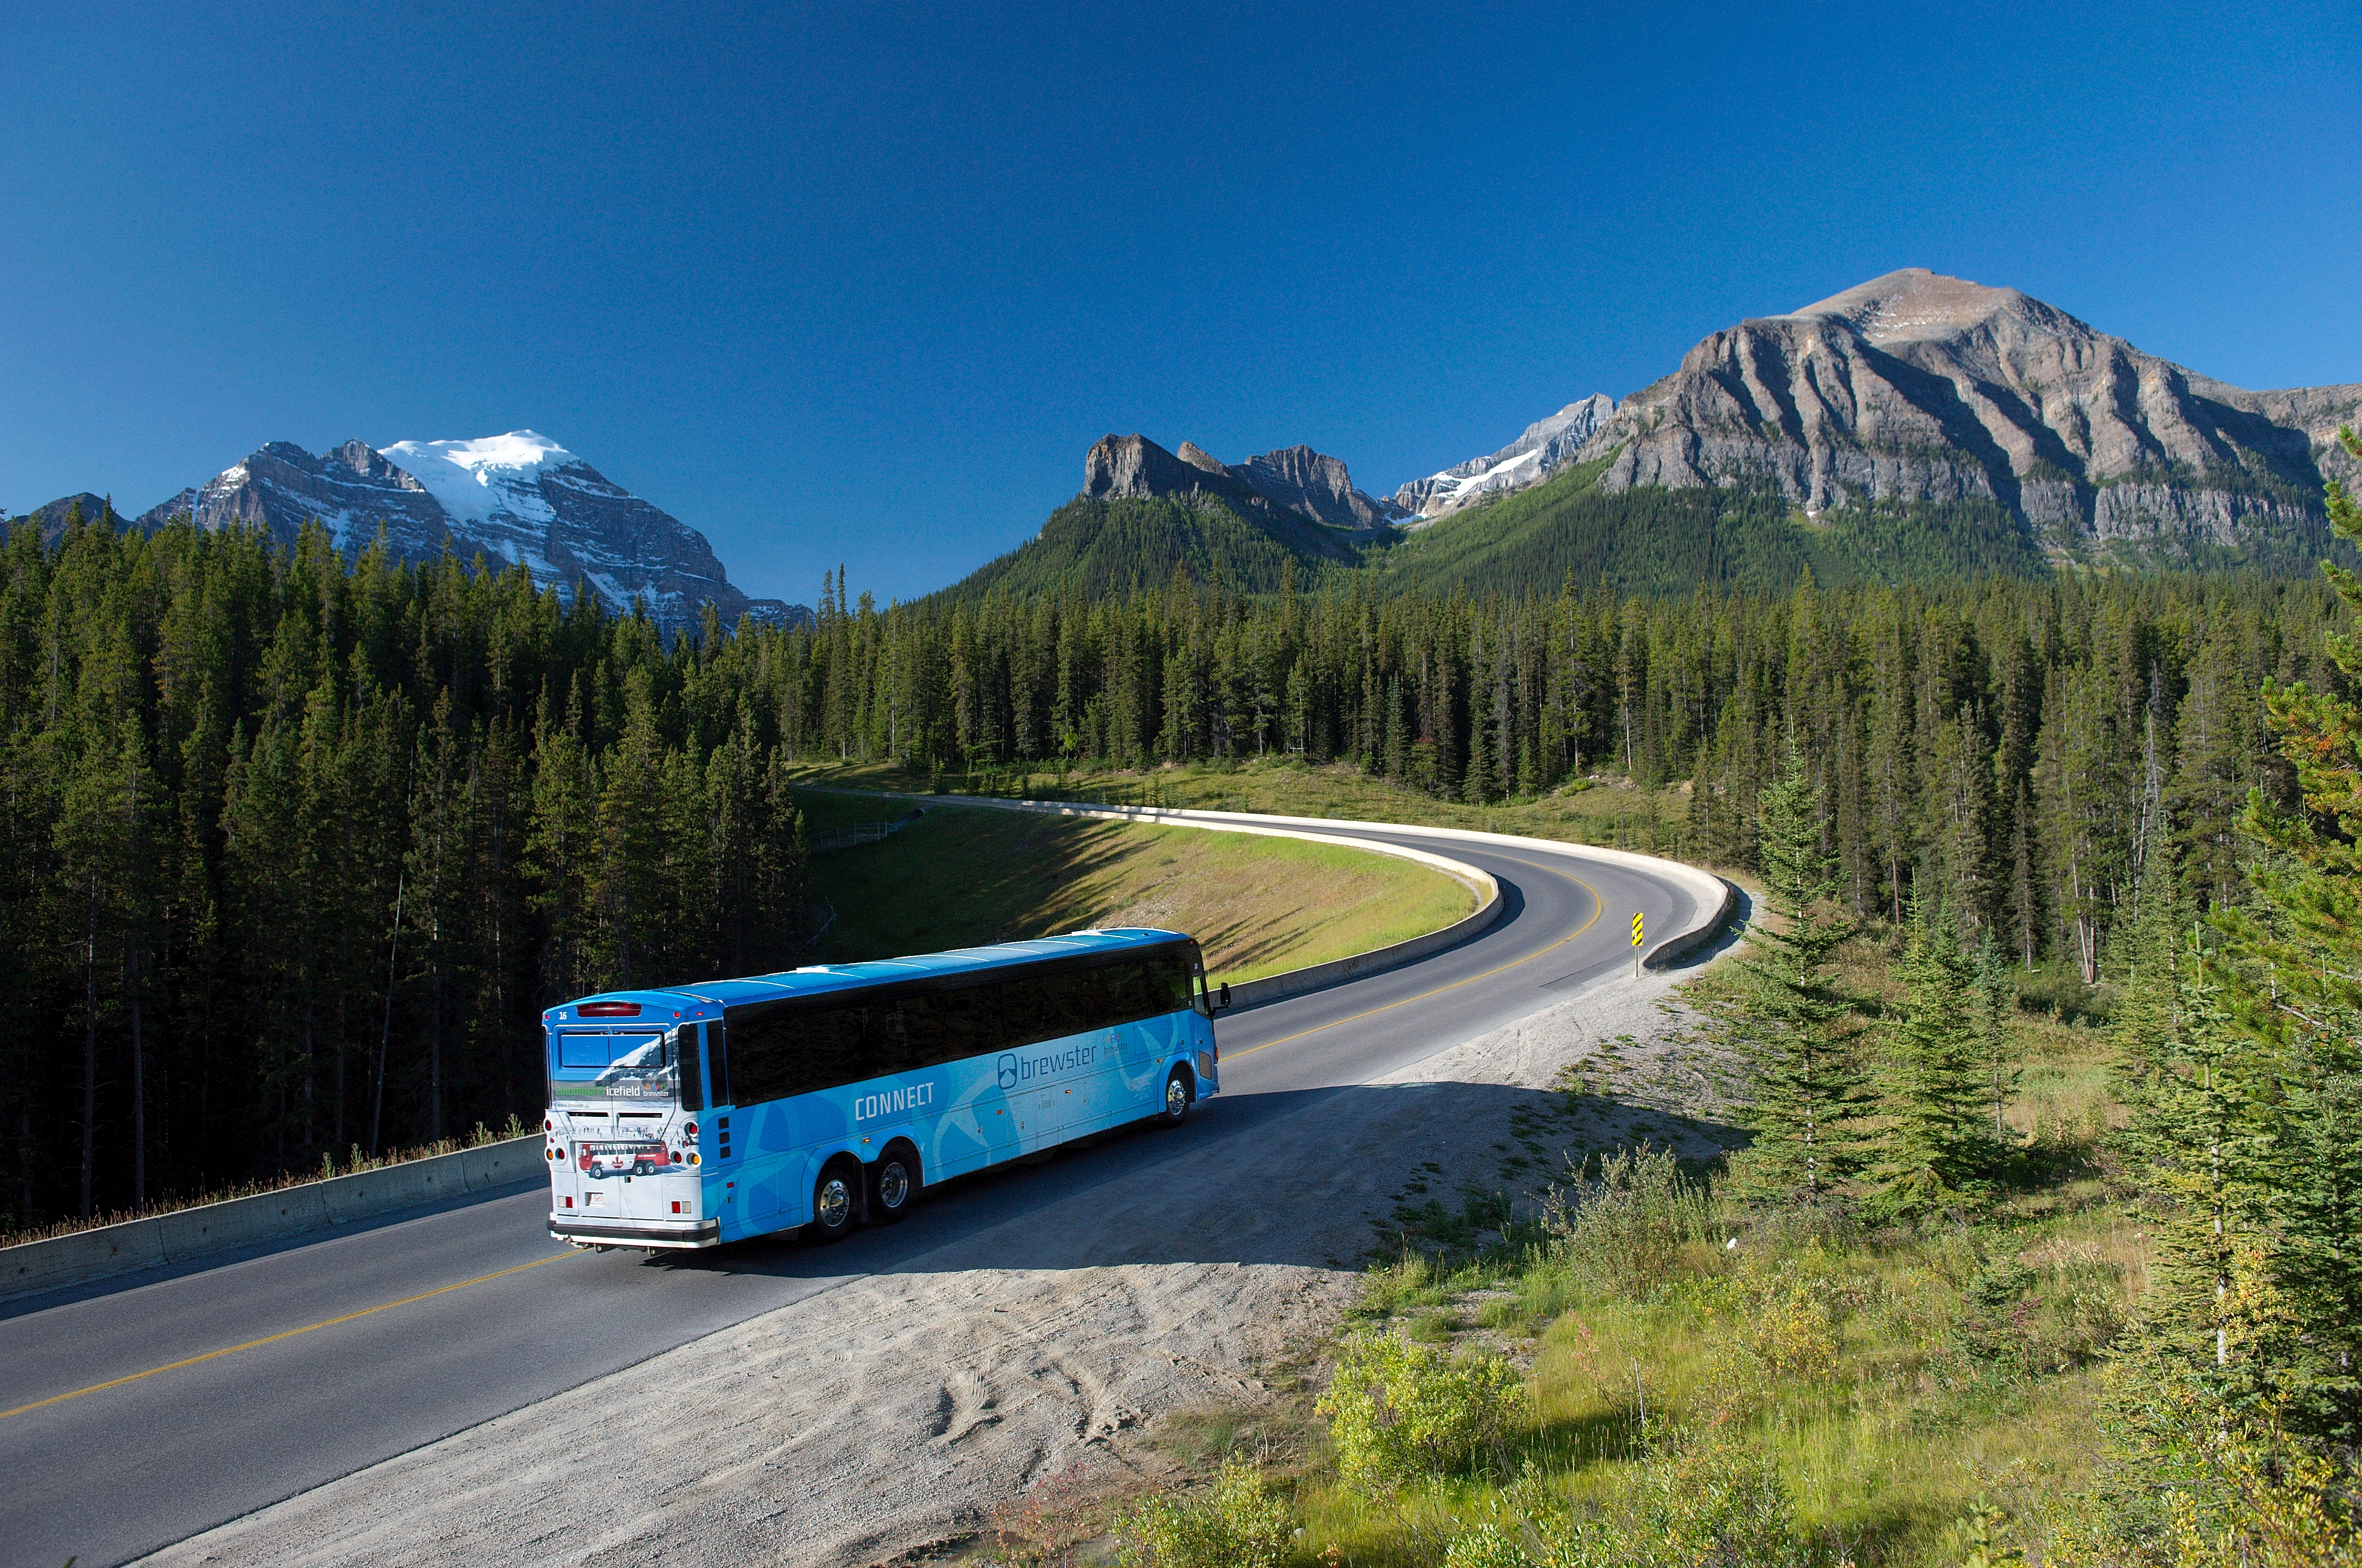 Motorcoach Sales Down 83% in Q2, according to ABA Foundation Report